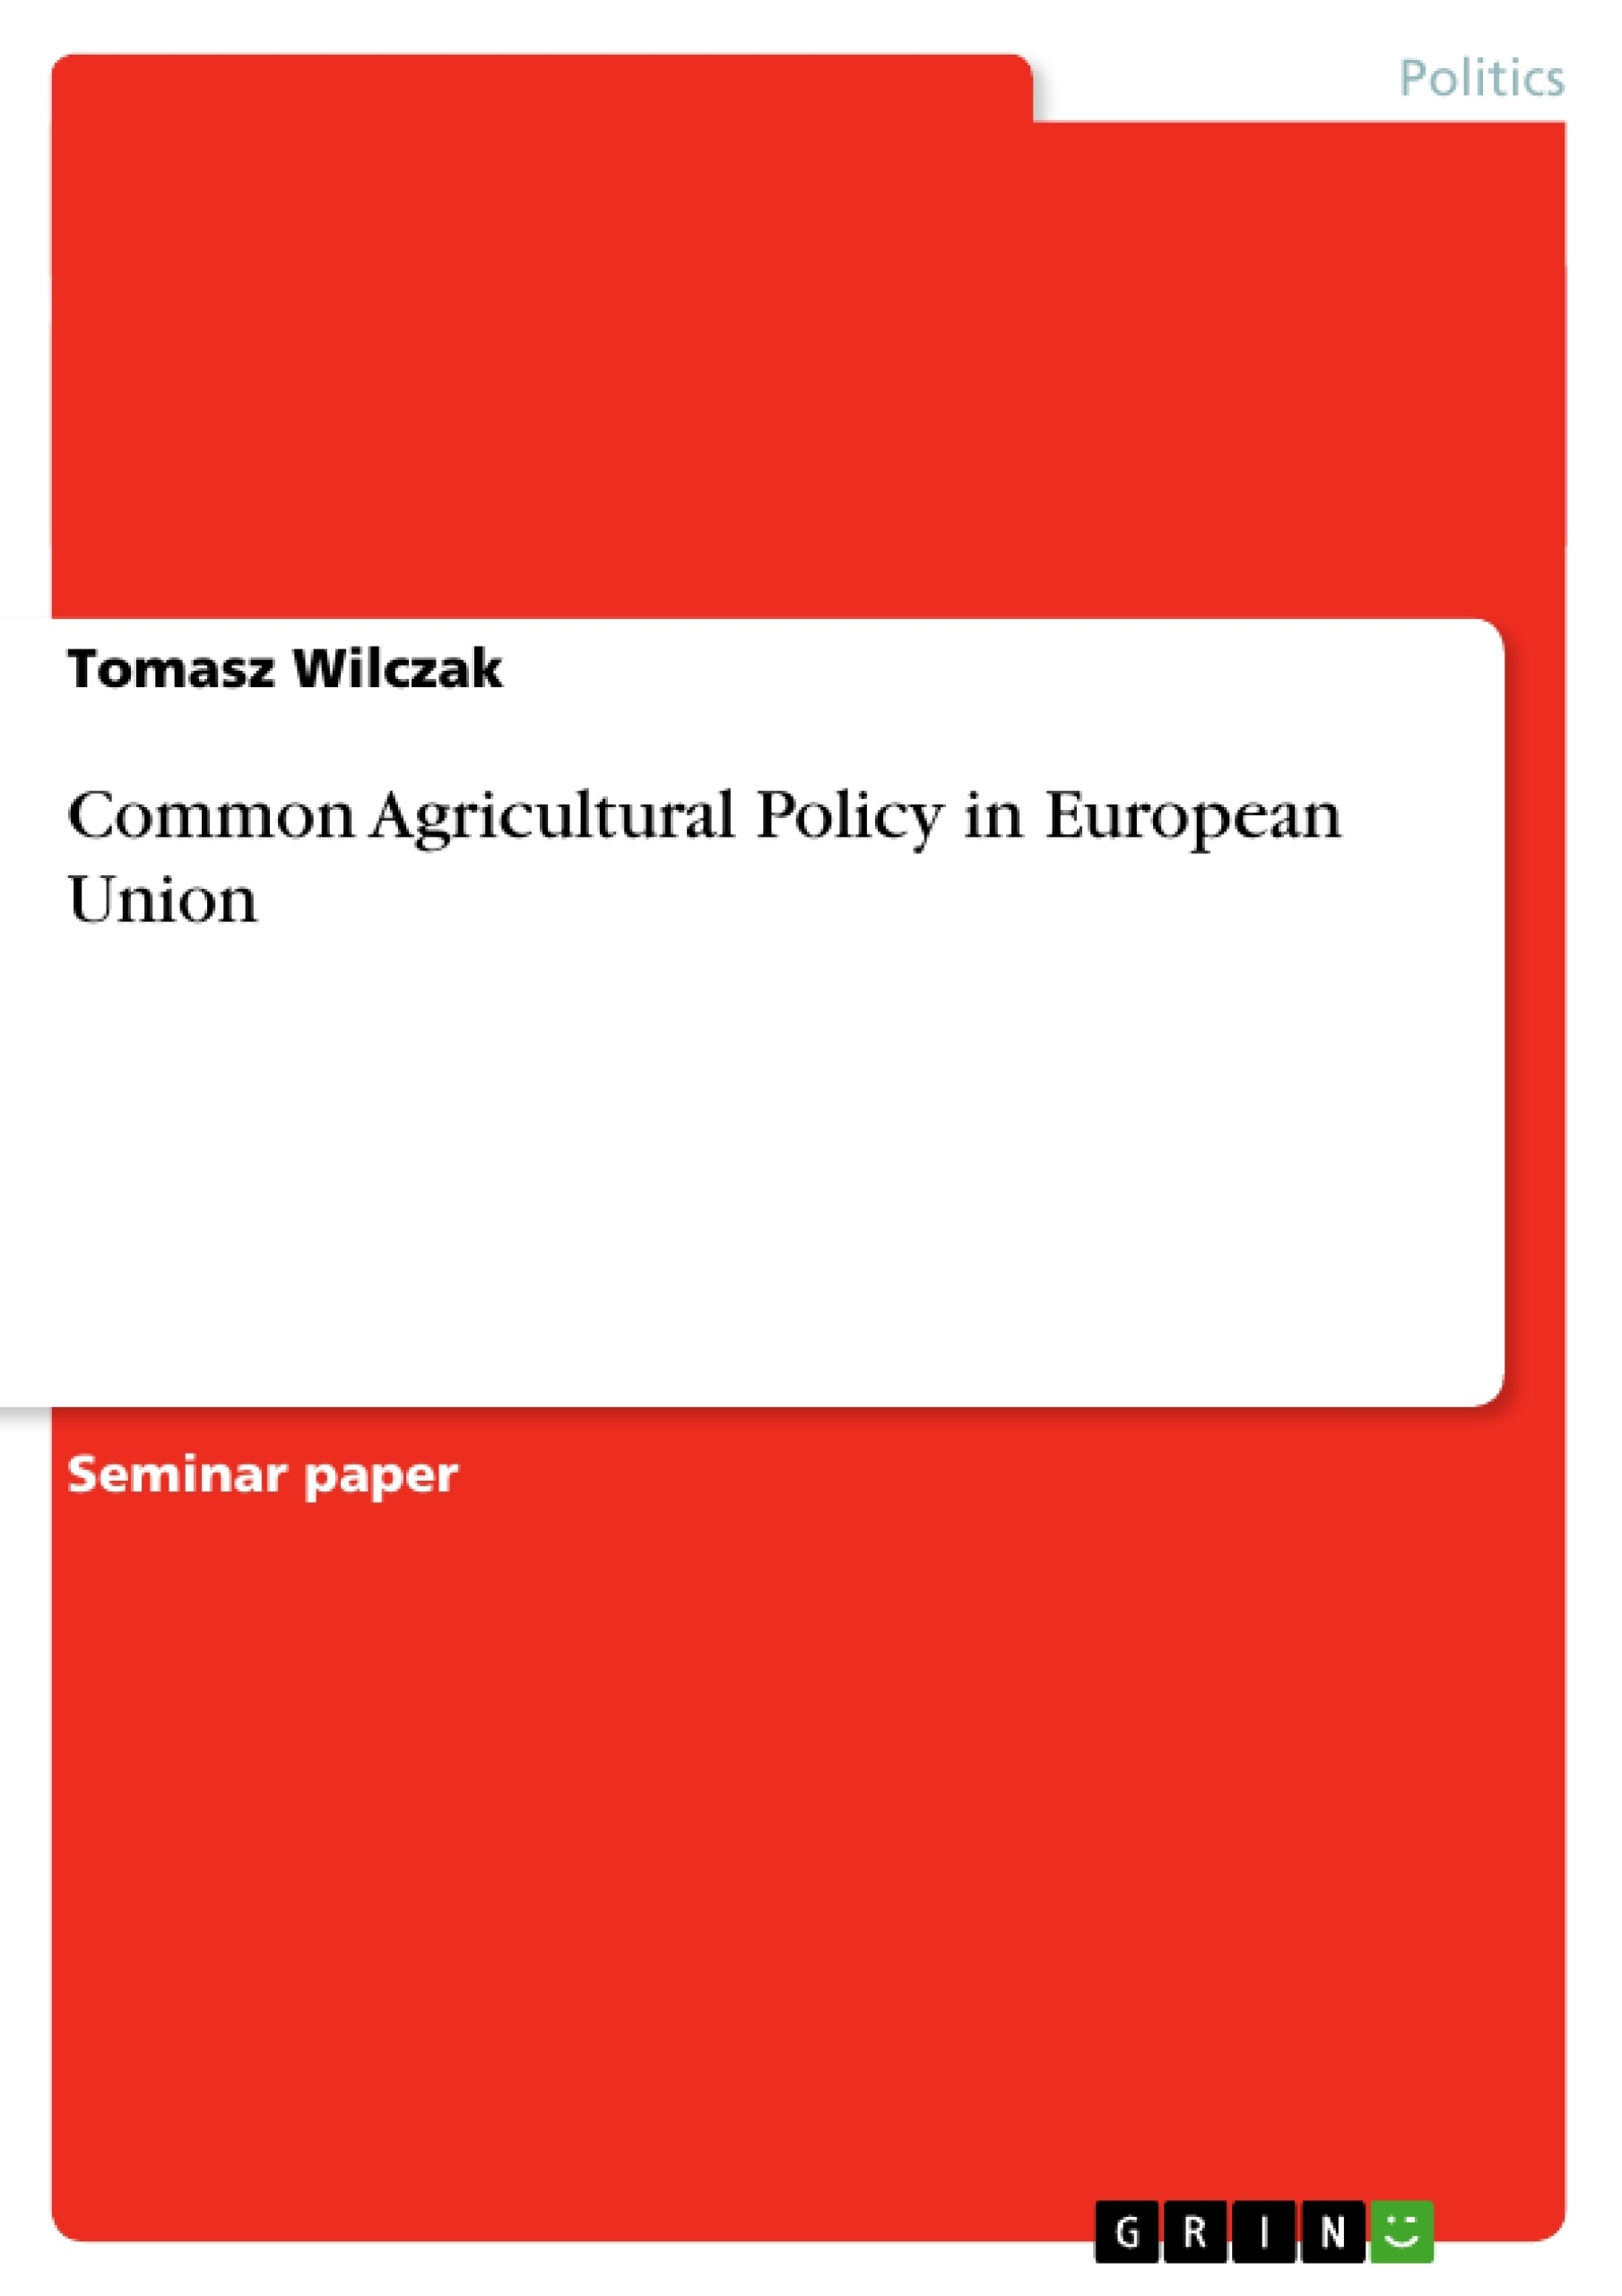 Title: Common Agricultural Policy in European Union